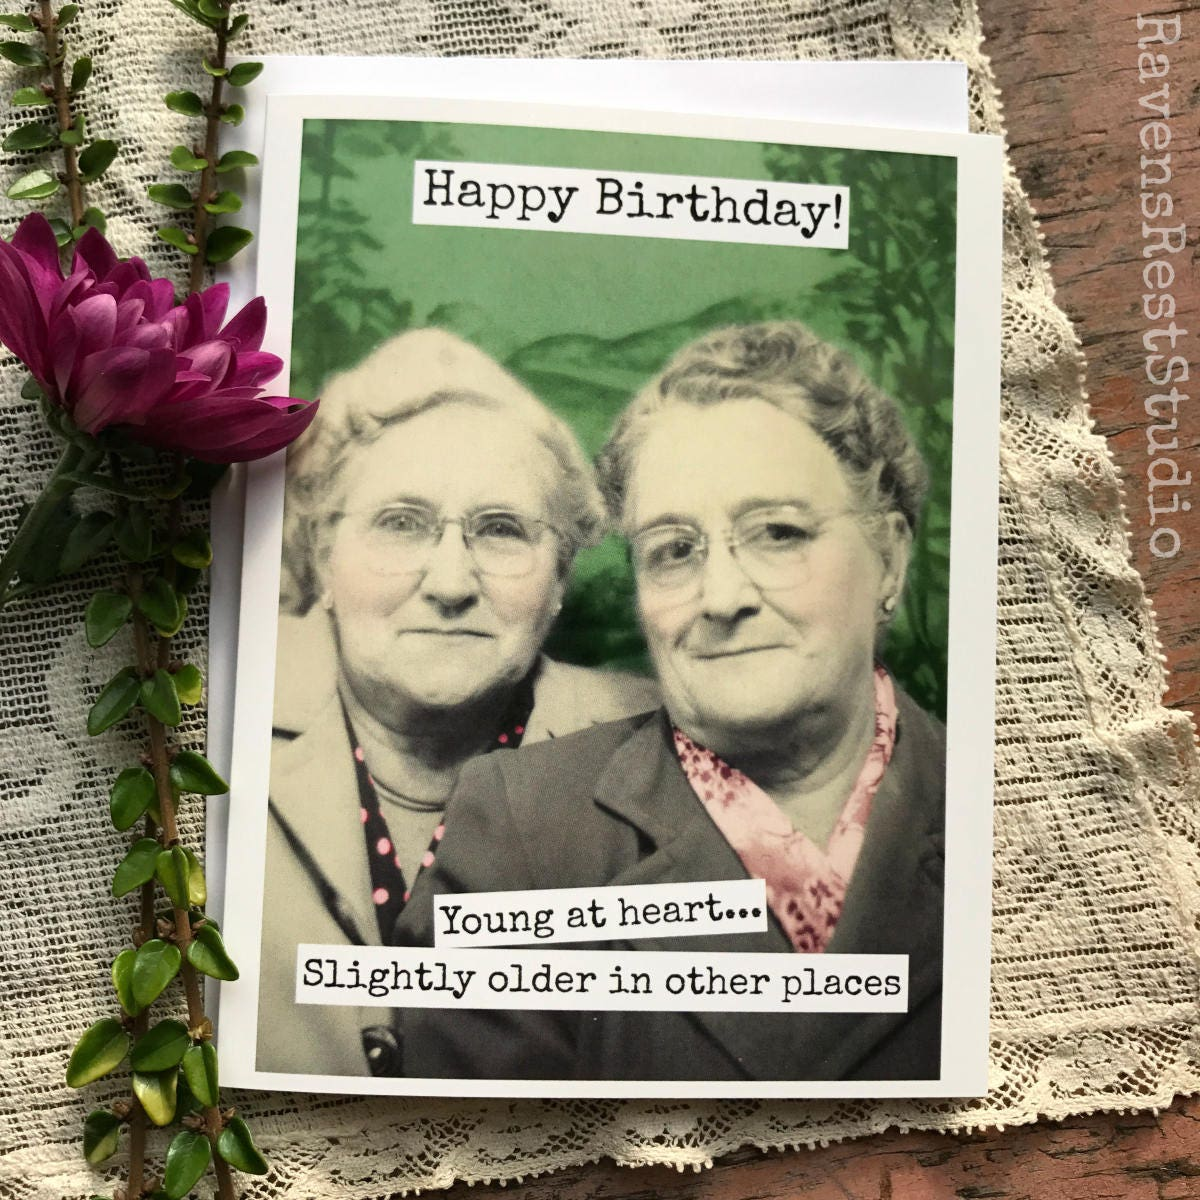 Funny Birthday Card. Greeting Card. Vintage Photo Booth